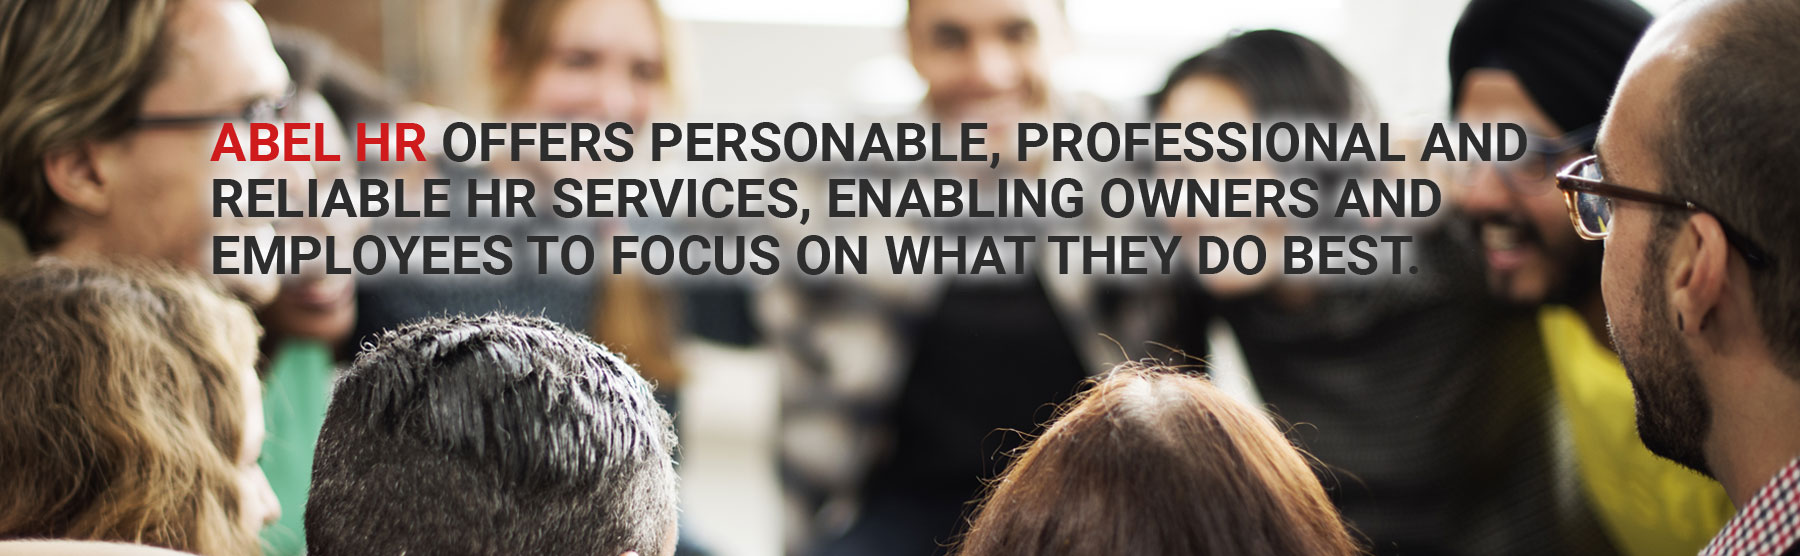 Personable, Professional & Reliable HR Services